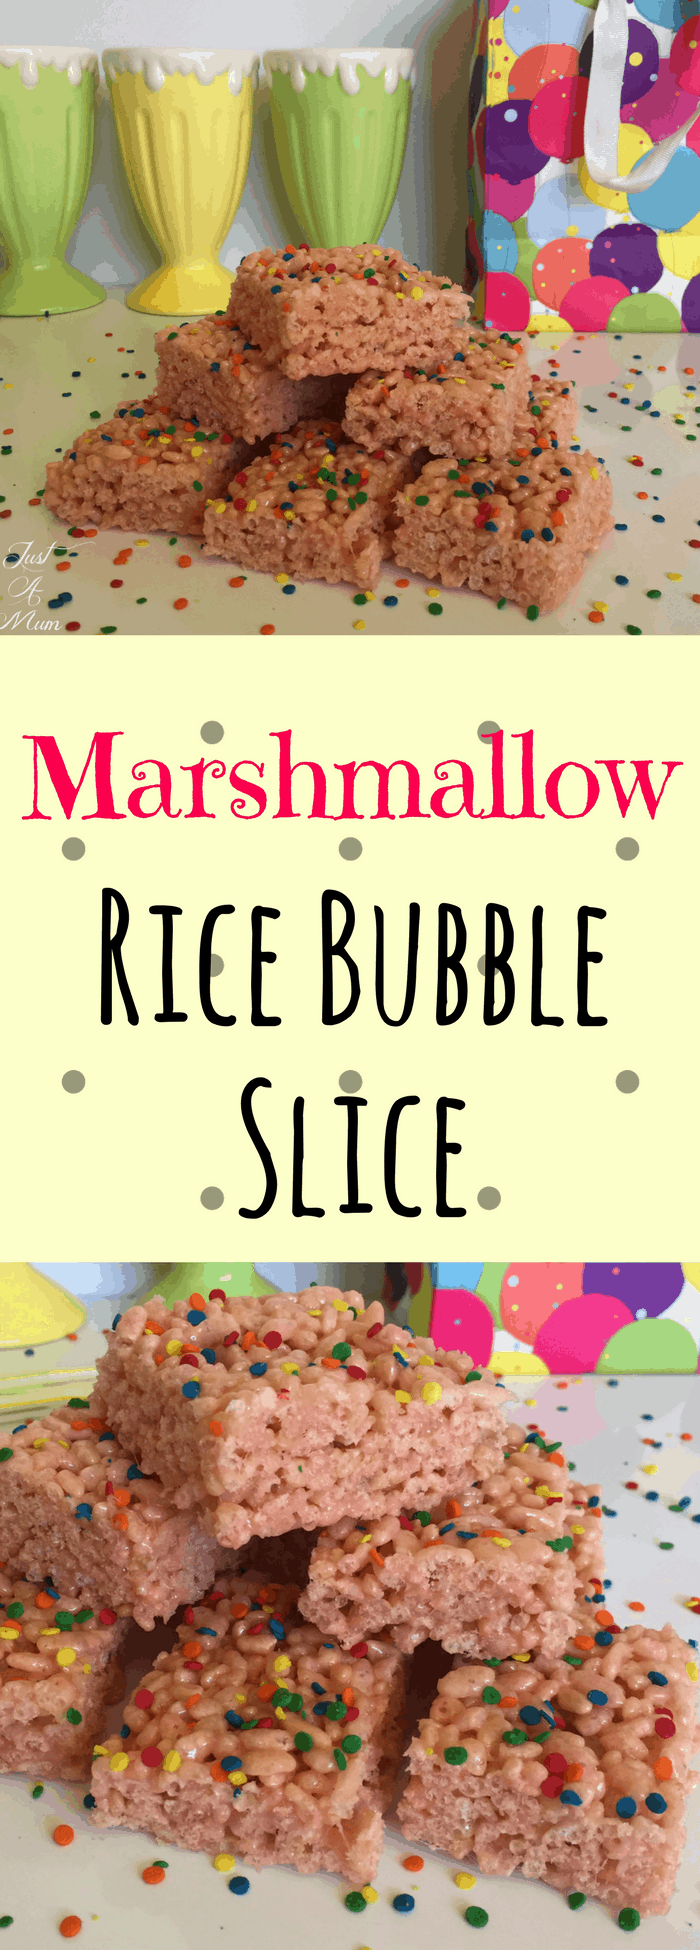 Just A Mum's Marshmallow Rice Bubble Slice Recipe